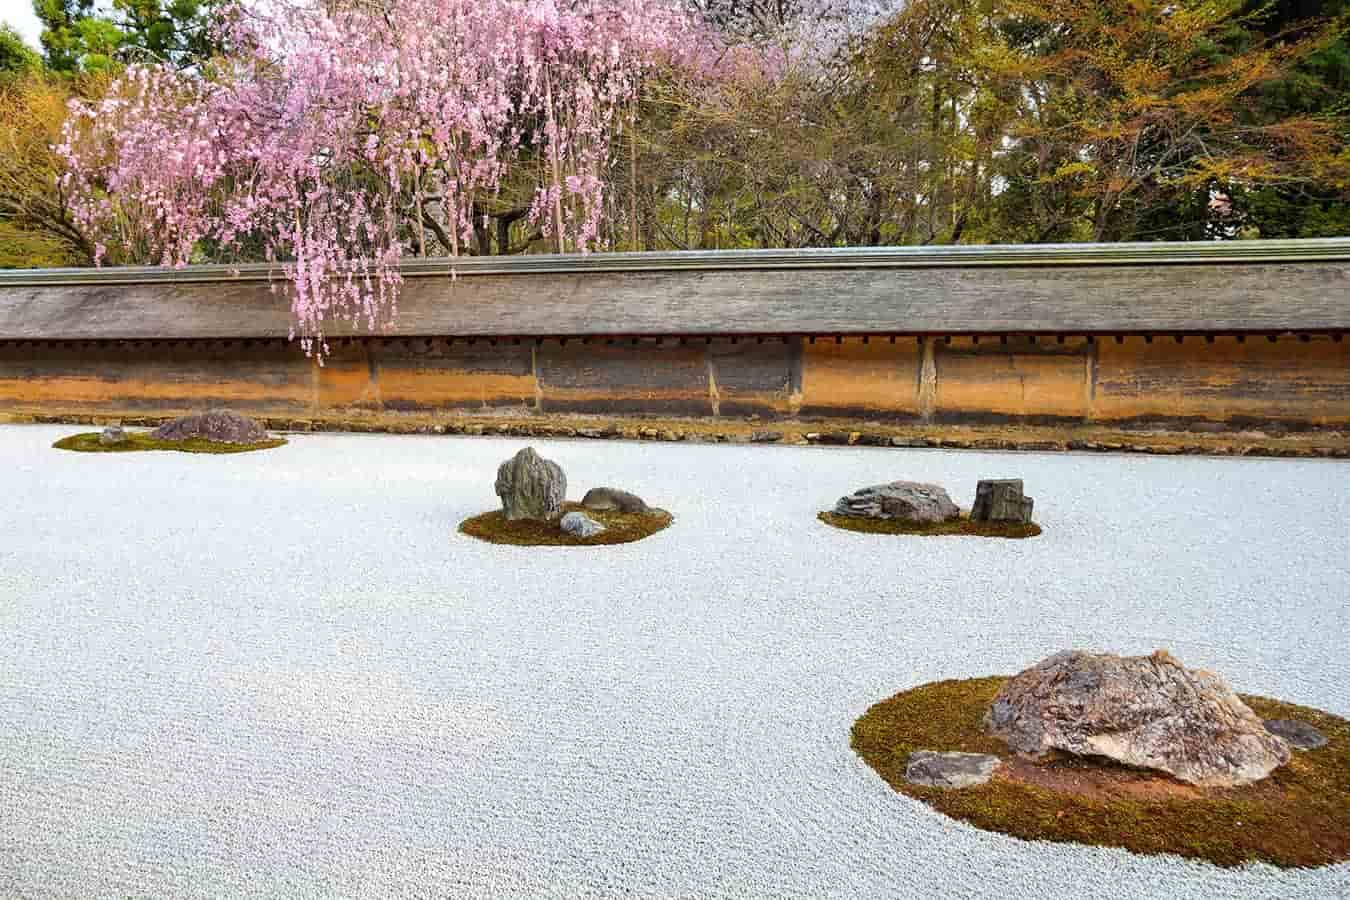 ryoan-ji-rock-garden-in-kyoto